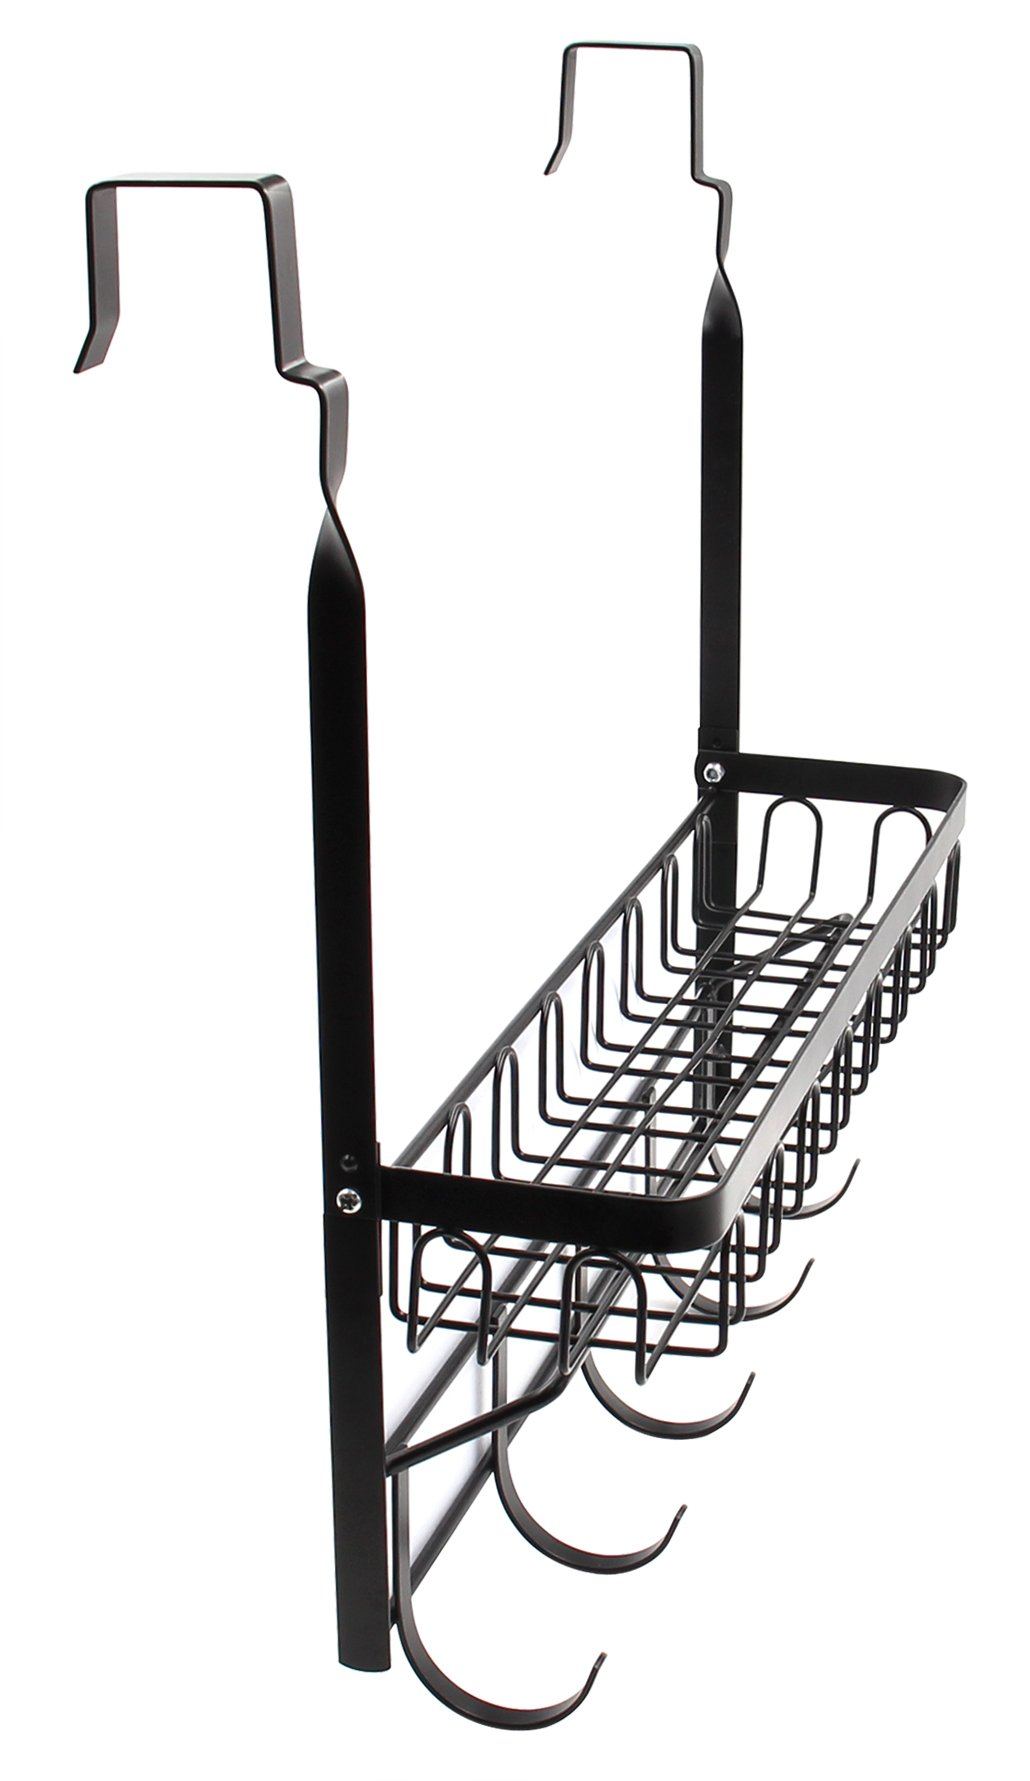 ESYLIFE Over the Door Hooks Organizer with Basket Hanging Storage Rack with Towel Bar, Black